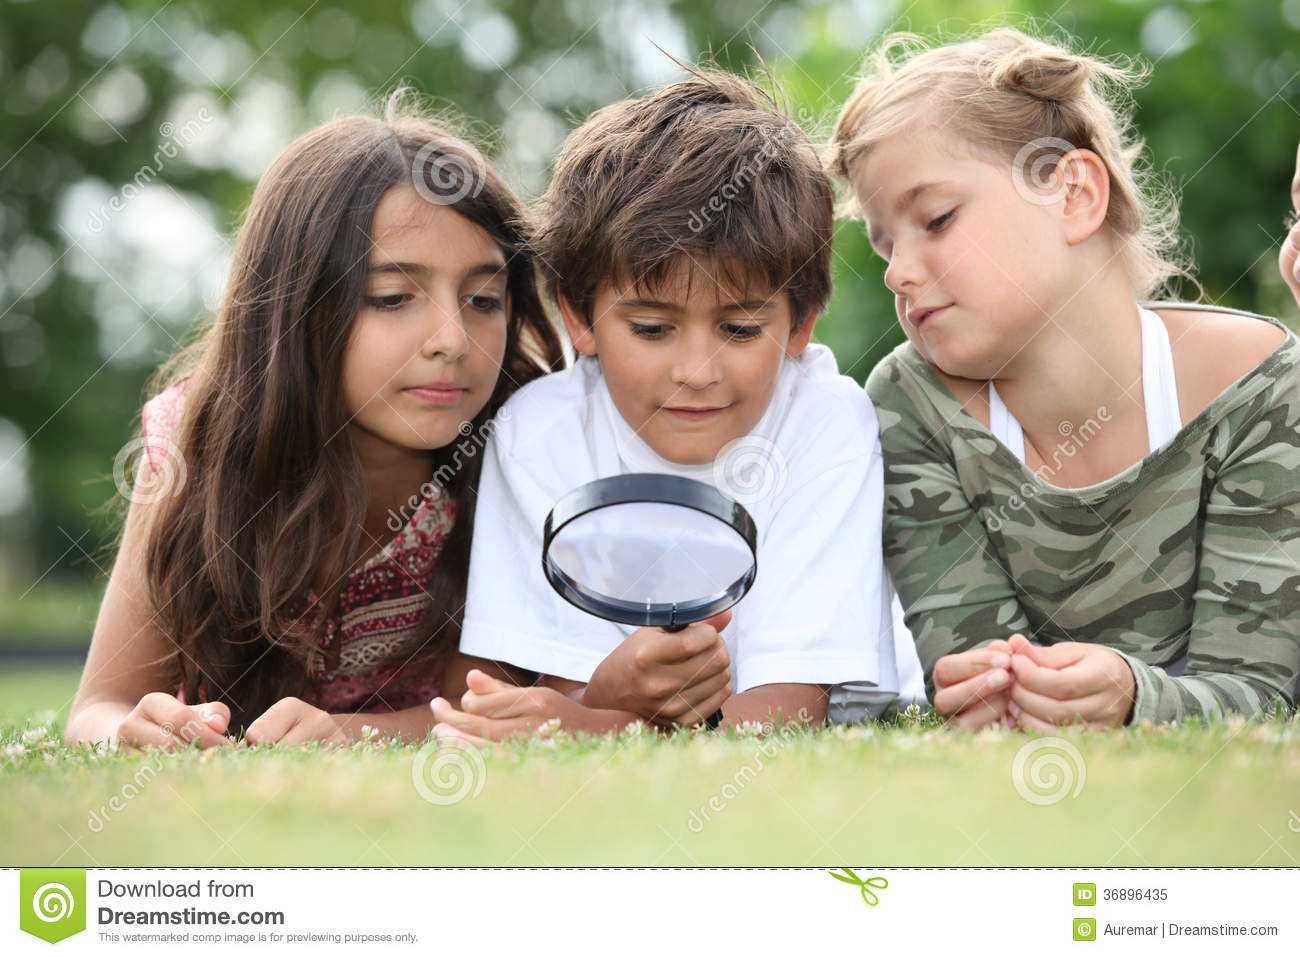 Children looking at insects